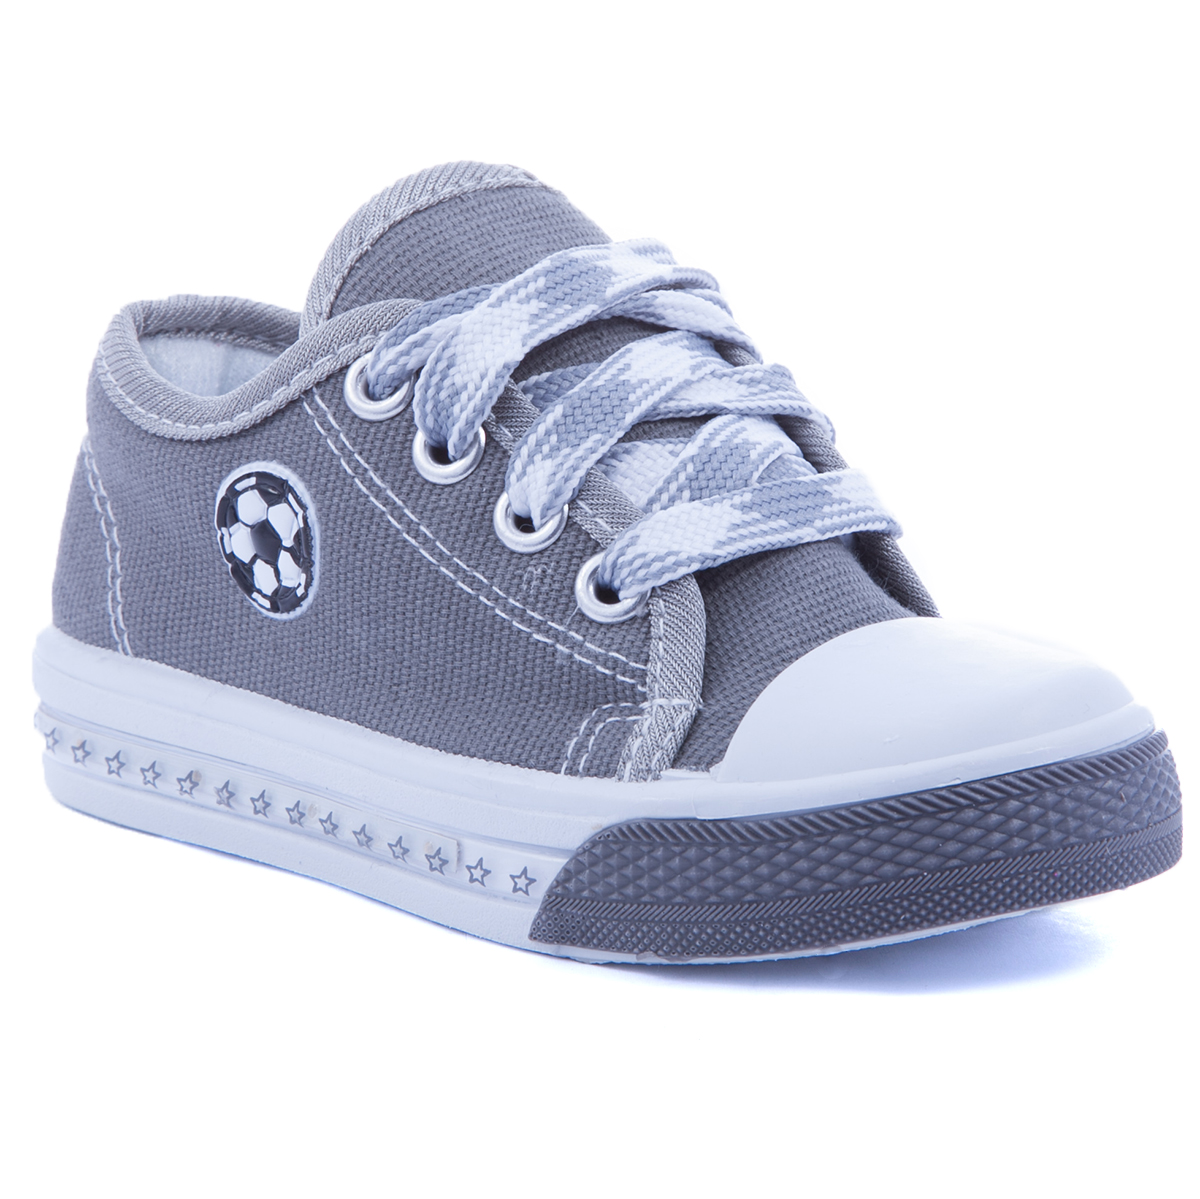 toddler canvas tennis sneakers low top lace up shoes baby